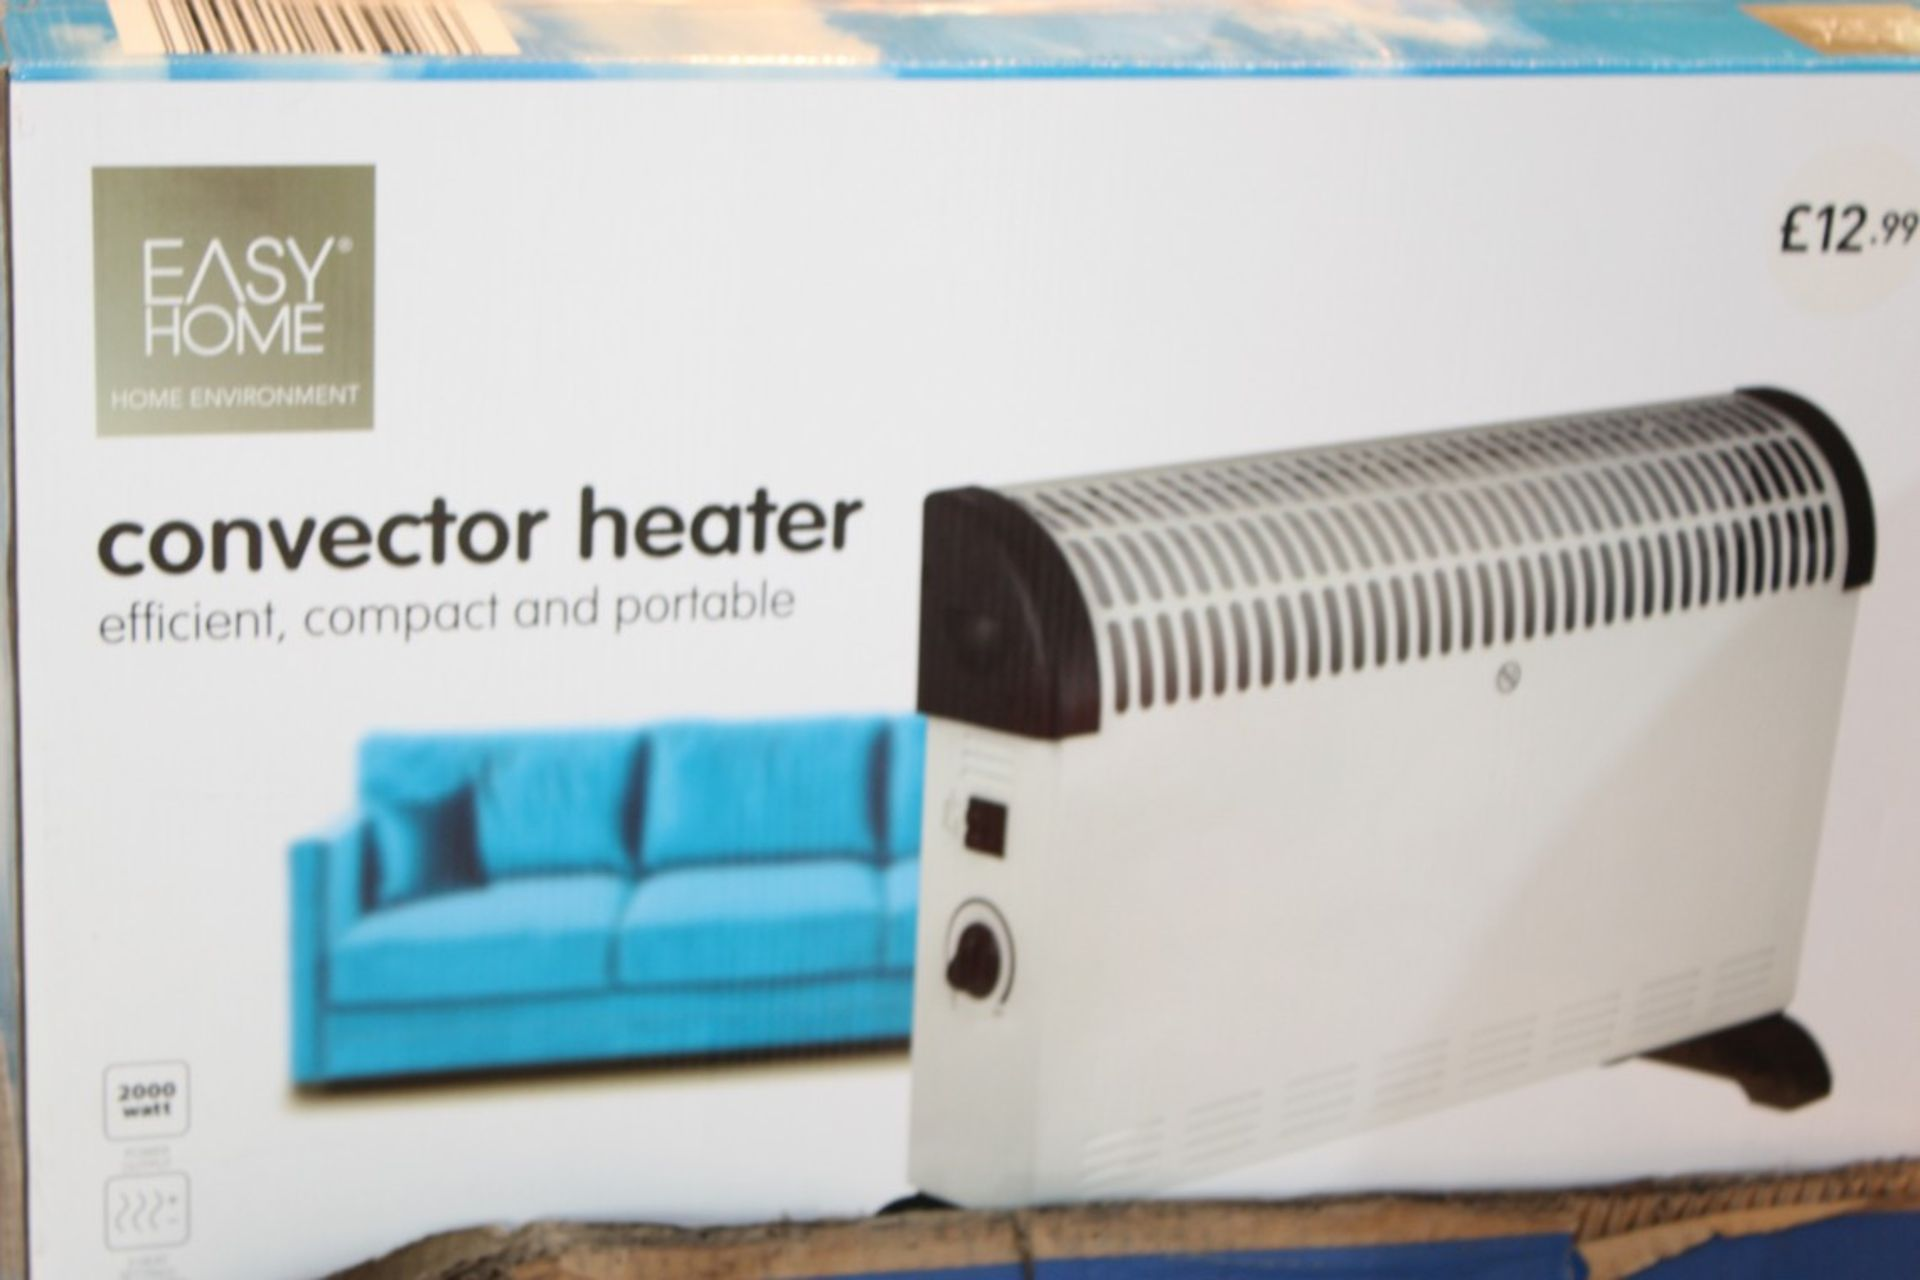 Lot 239 - Boxed Easy Home Efficient Compact & Portable Convector Heater RRP £15 Each (Pictures Are For